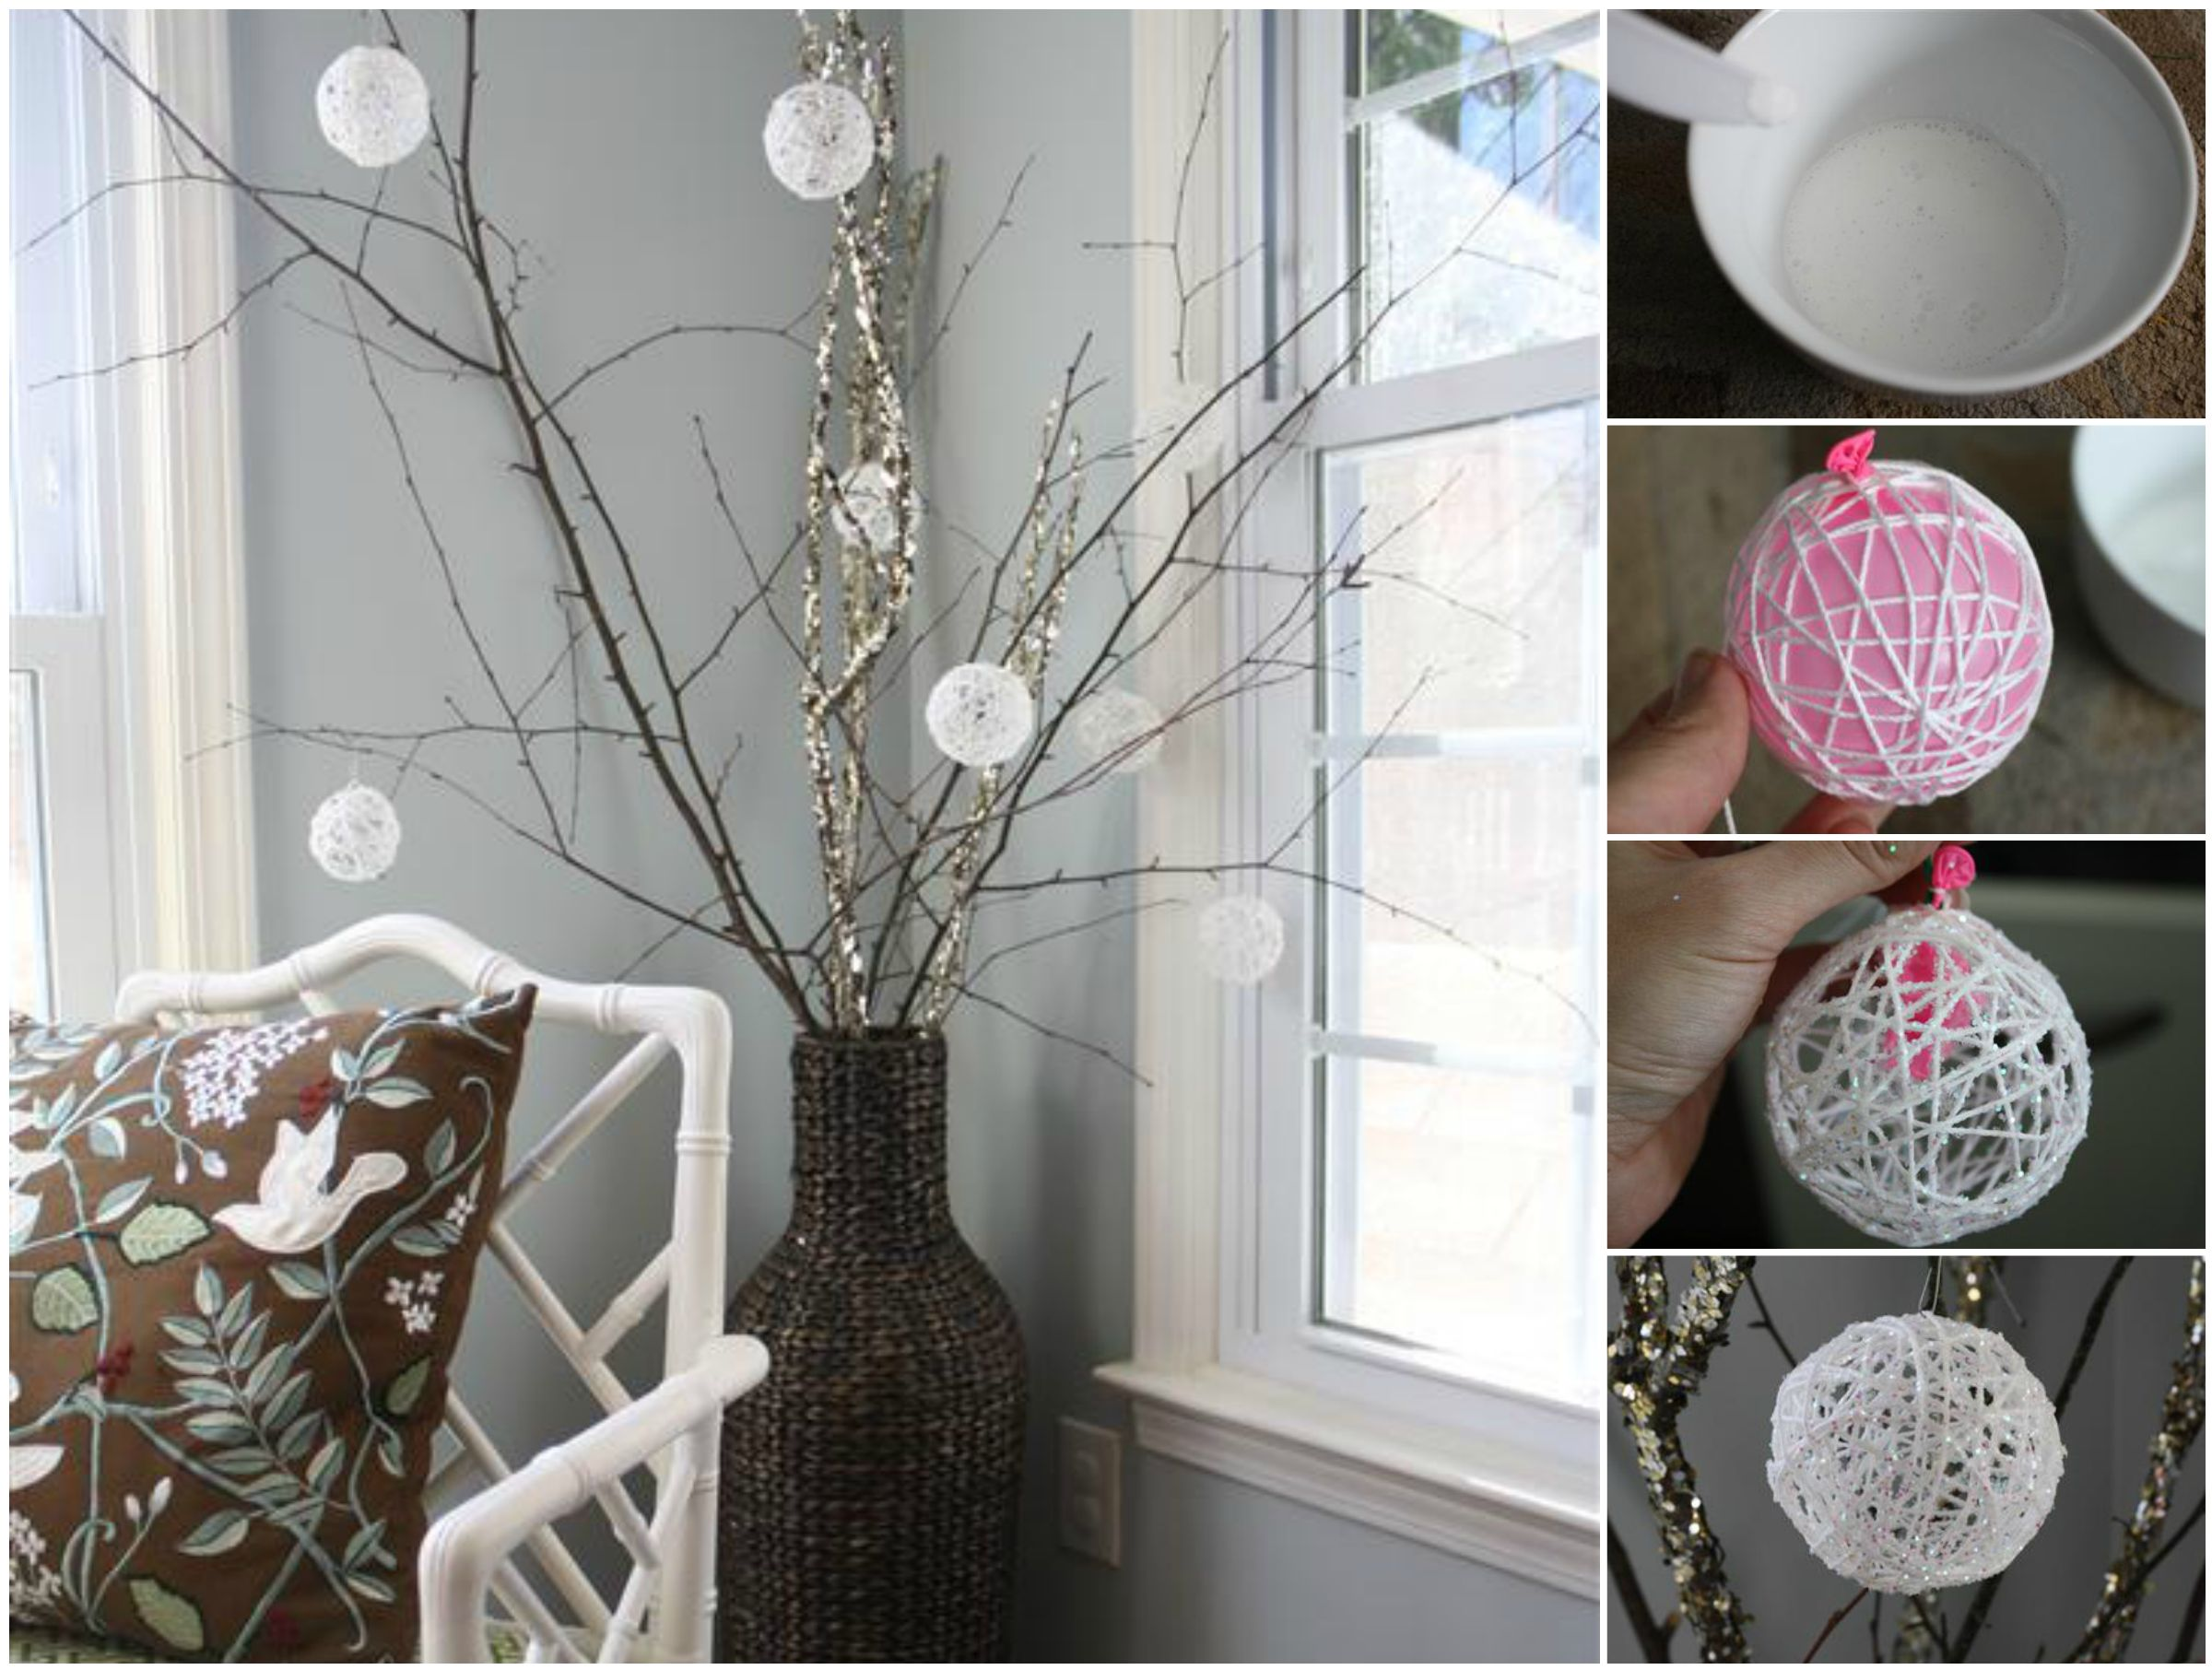 Creative ideas diy glittery snowball christmas ornaments - Creative ideas home decor ...